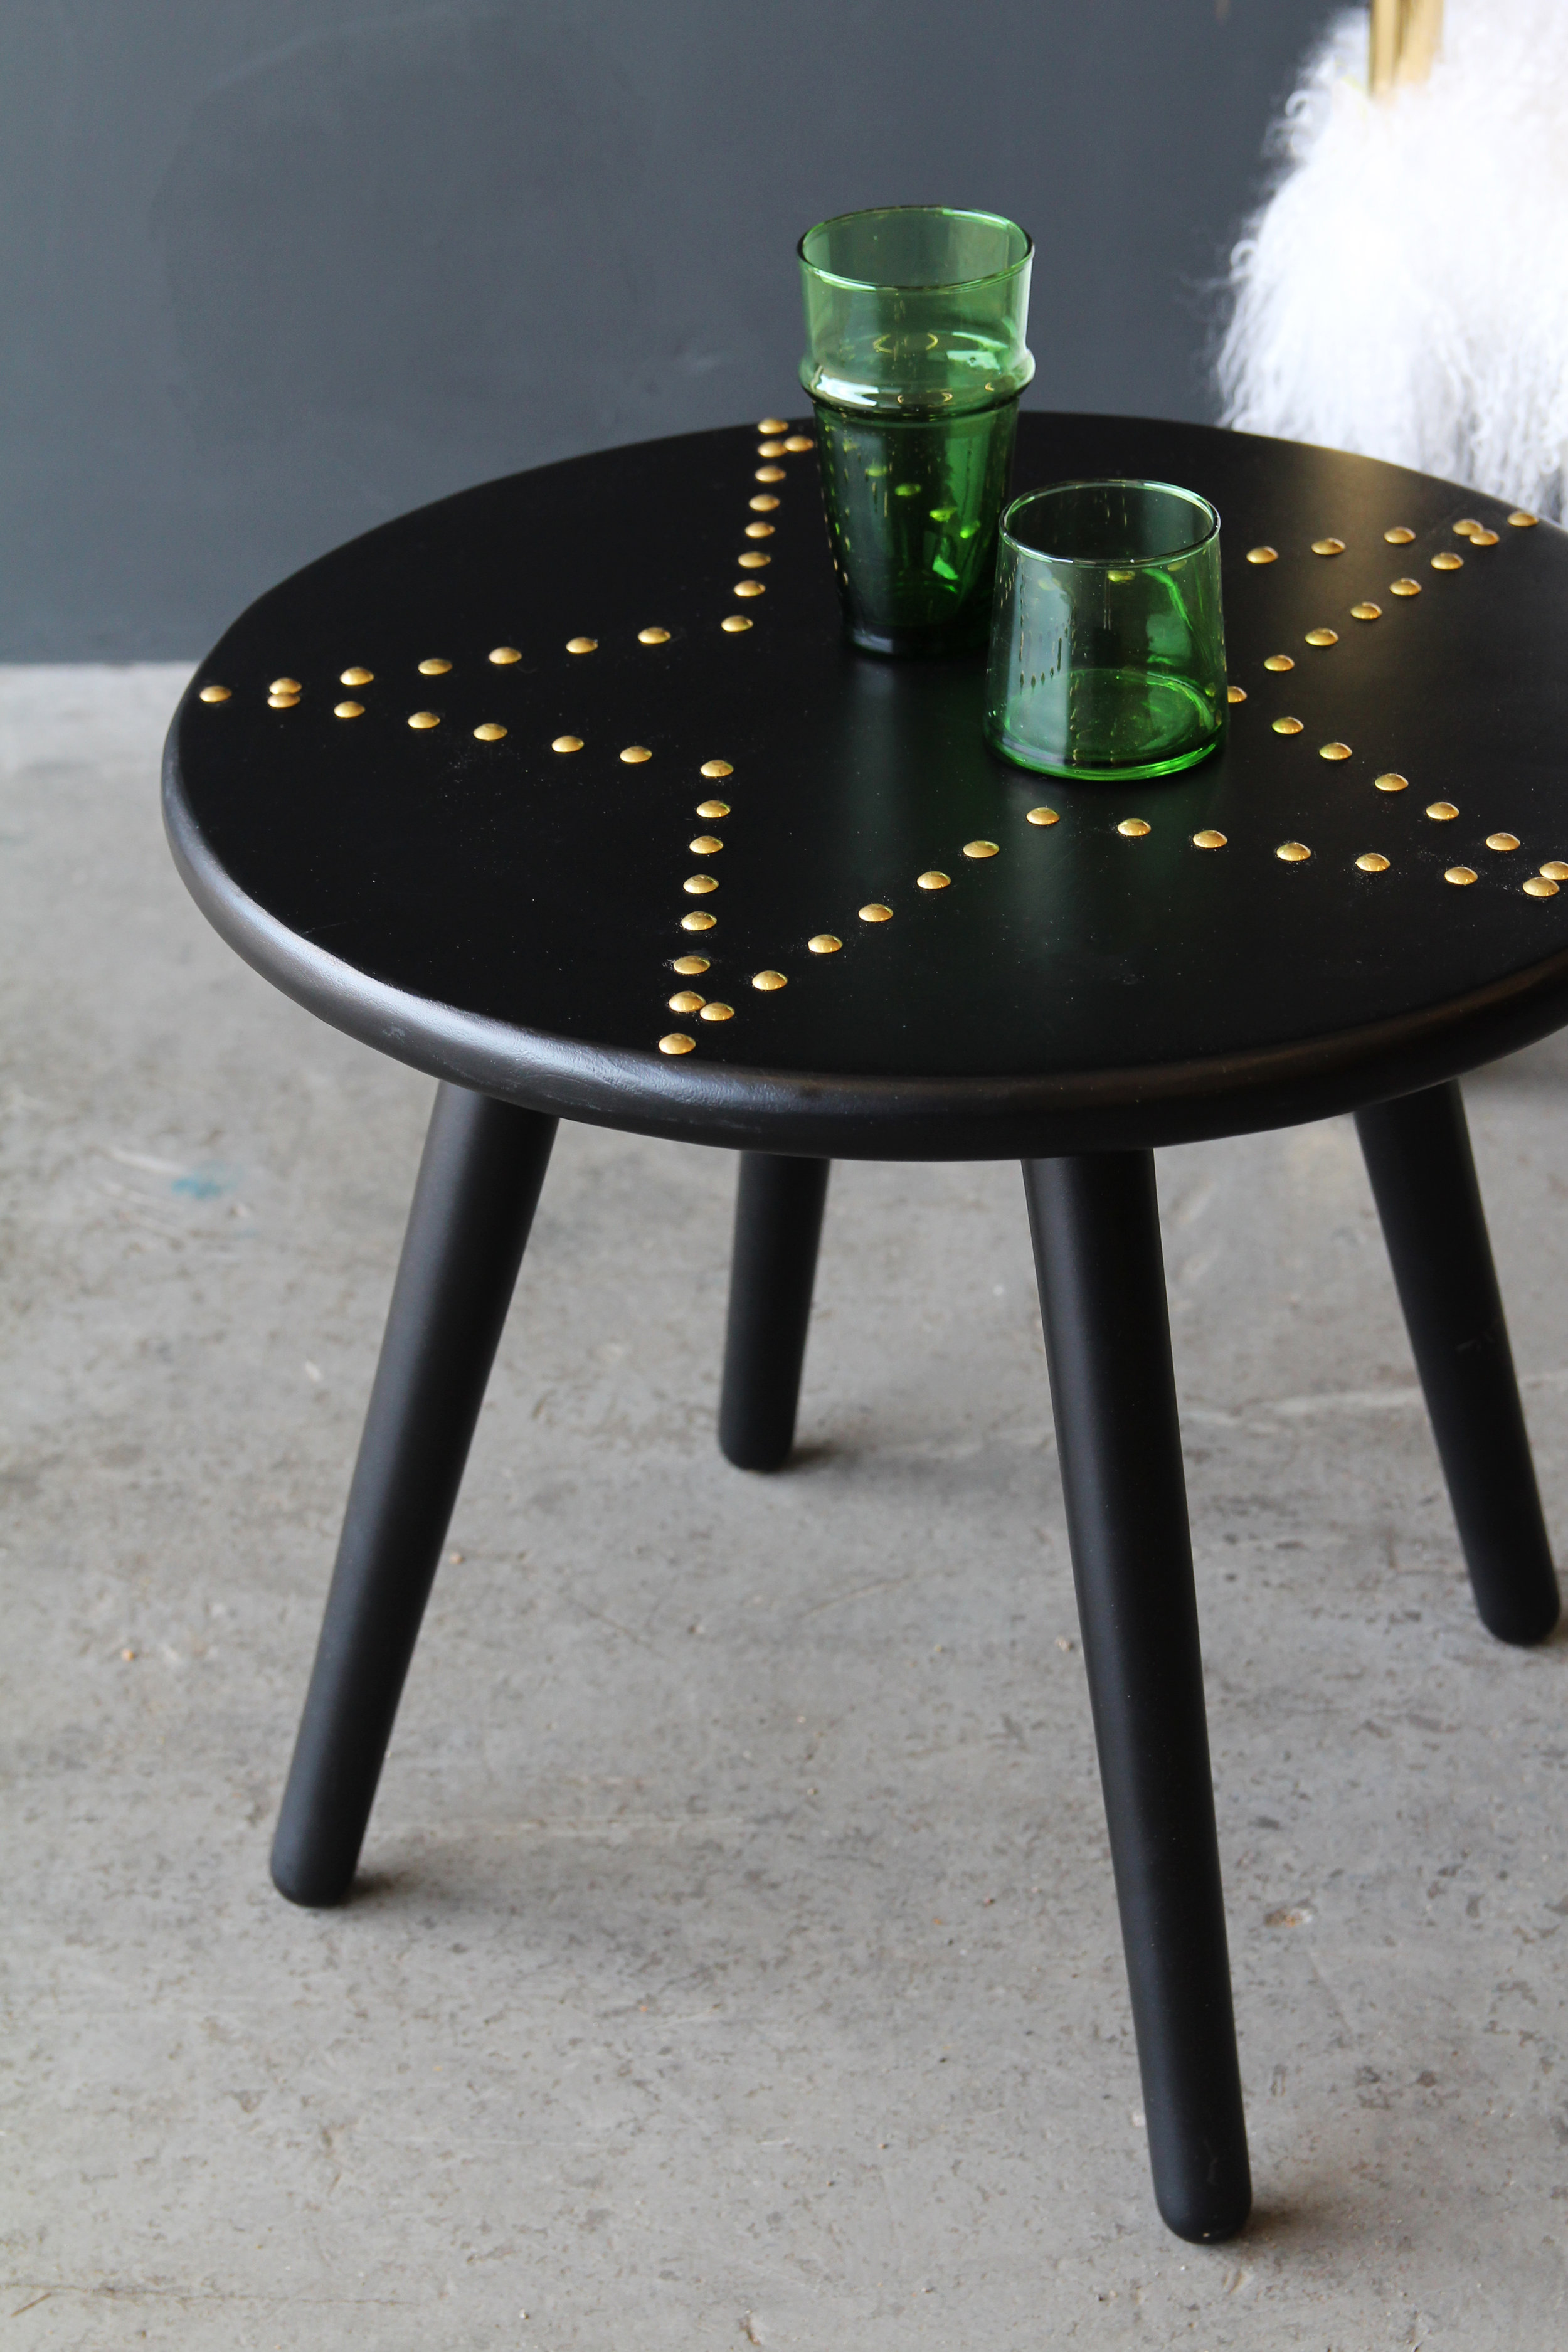 Black & Gold Star Studded Side Table £120.00  Add some star studded glamour to your home - literally! This Black & Gold Star Studded Side Table is the perfect accessory to any room and has the versatility of being used as a stool should you wish to- Black and made from wood, the top then has gold coloured press studs in the shape of a star which whilst simple, has a really great look and feel to it.   www.rockettstgeorge.co.uk